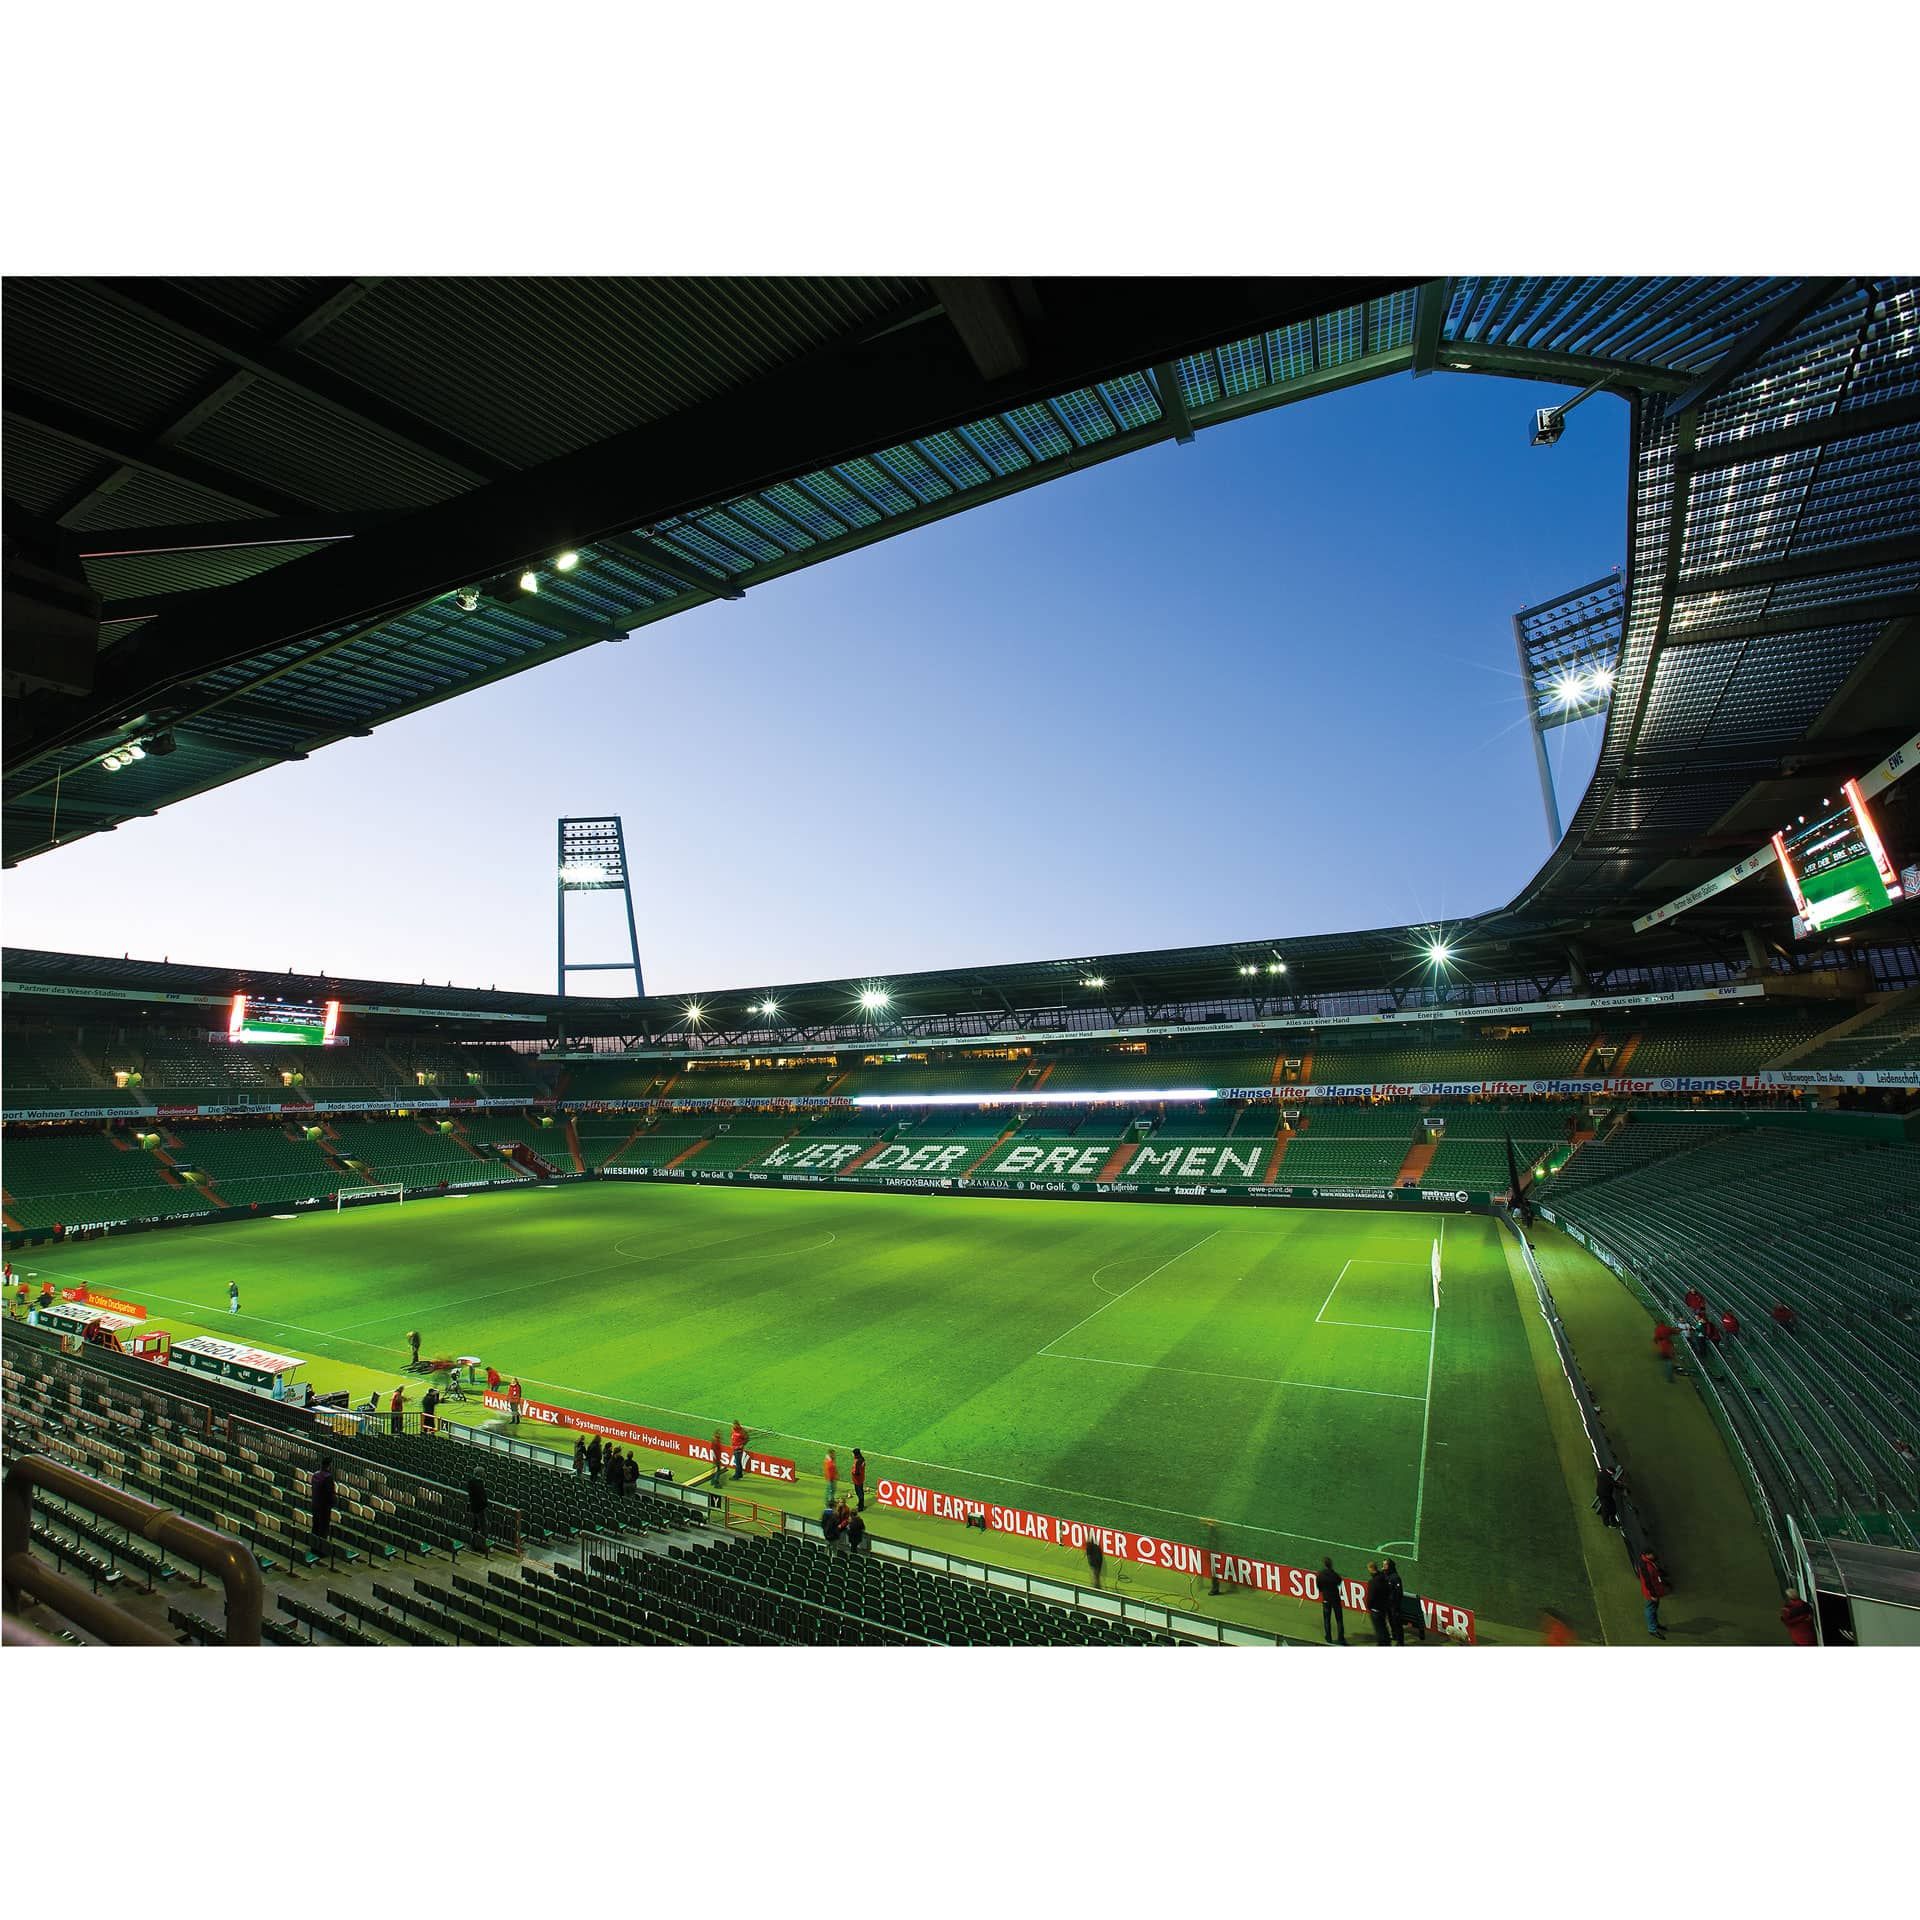 fototapete werder bremen weserstadion innen von k l wall art exklusiv f r echte werder fans. Black Bedroom Furniture Sets. Home Design Ideas